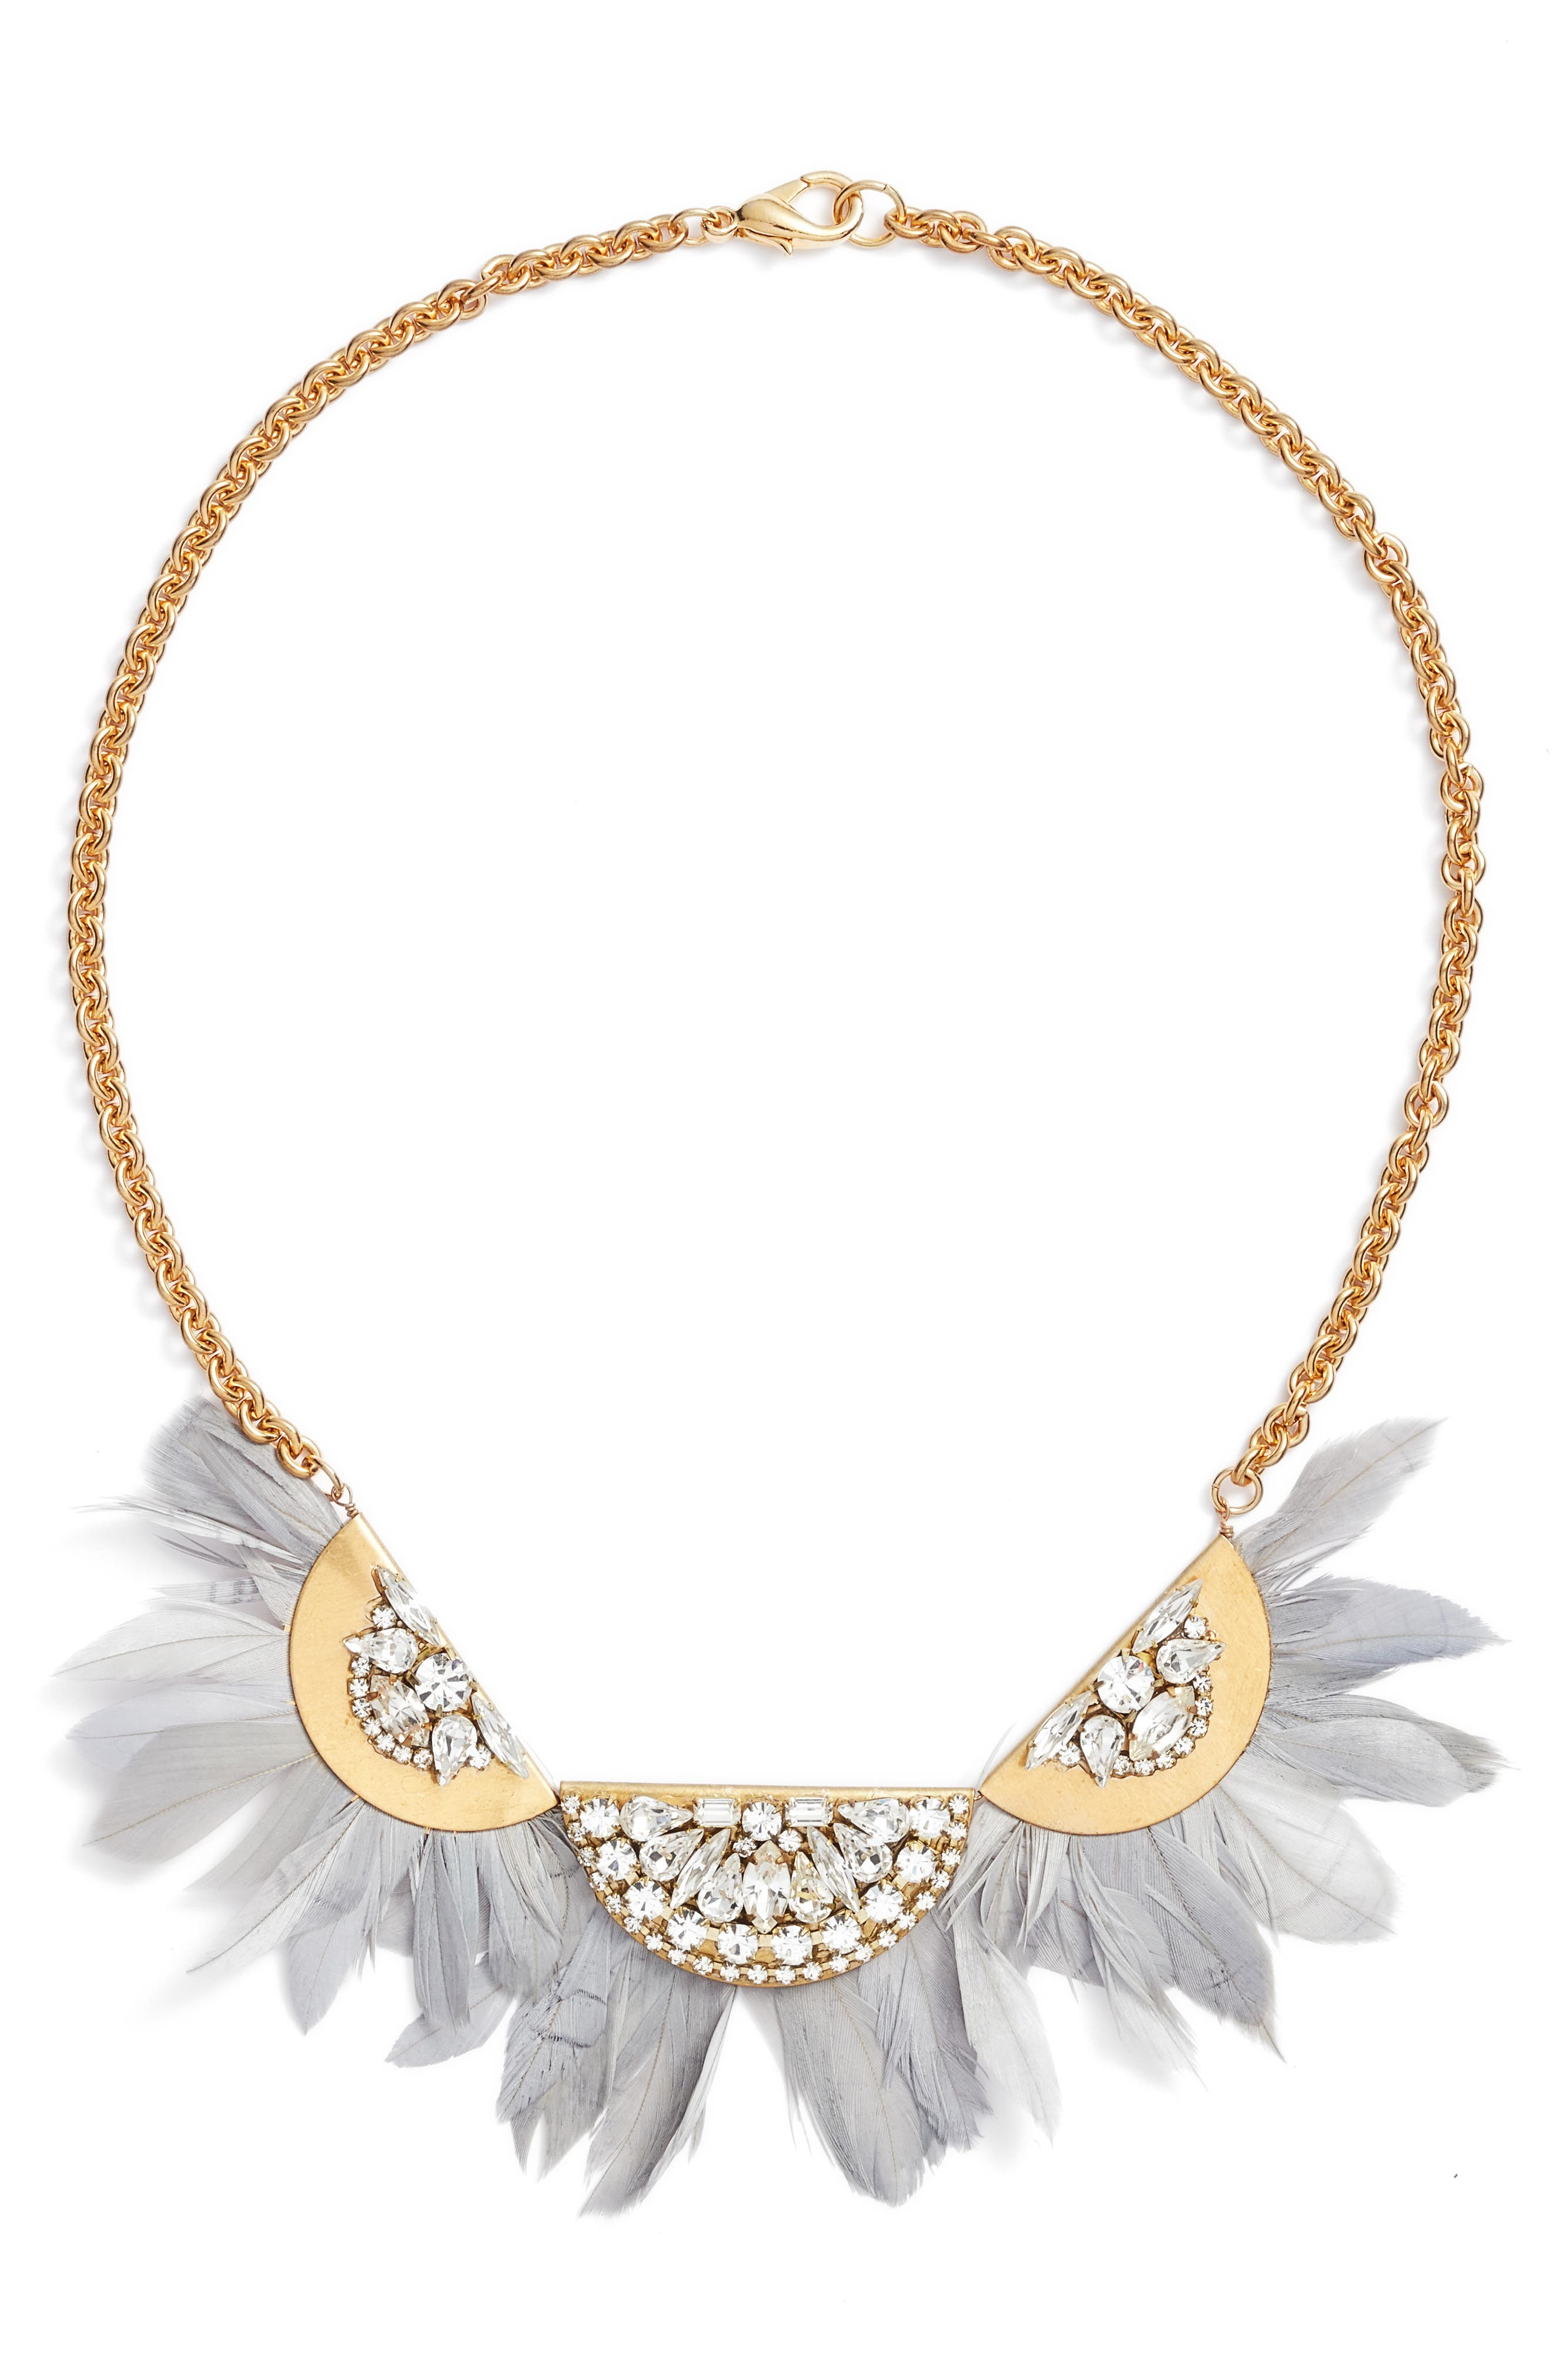 Feather Bib Necklace,                         Main,                         color, Grey/ Gold